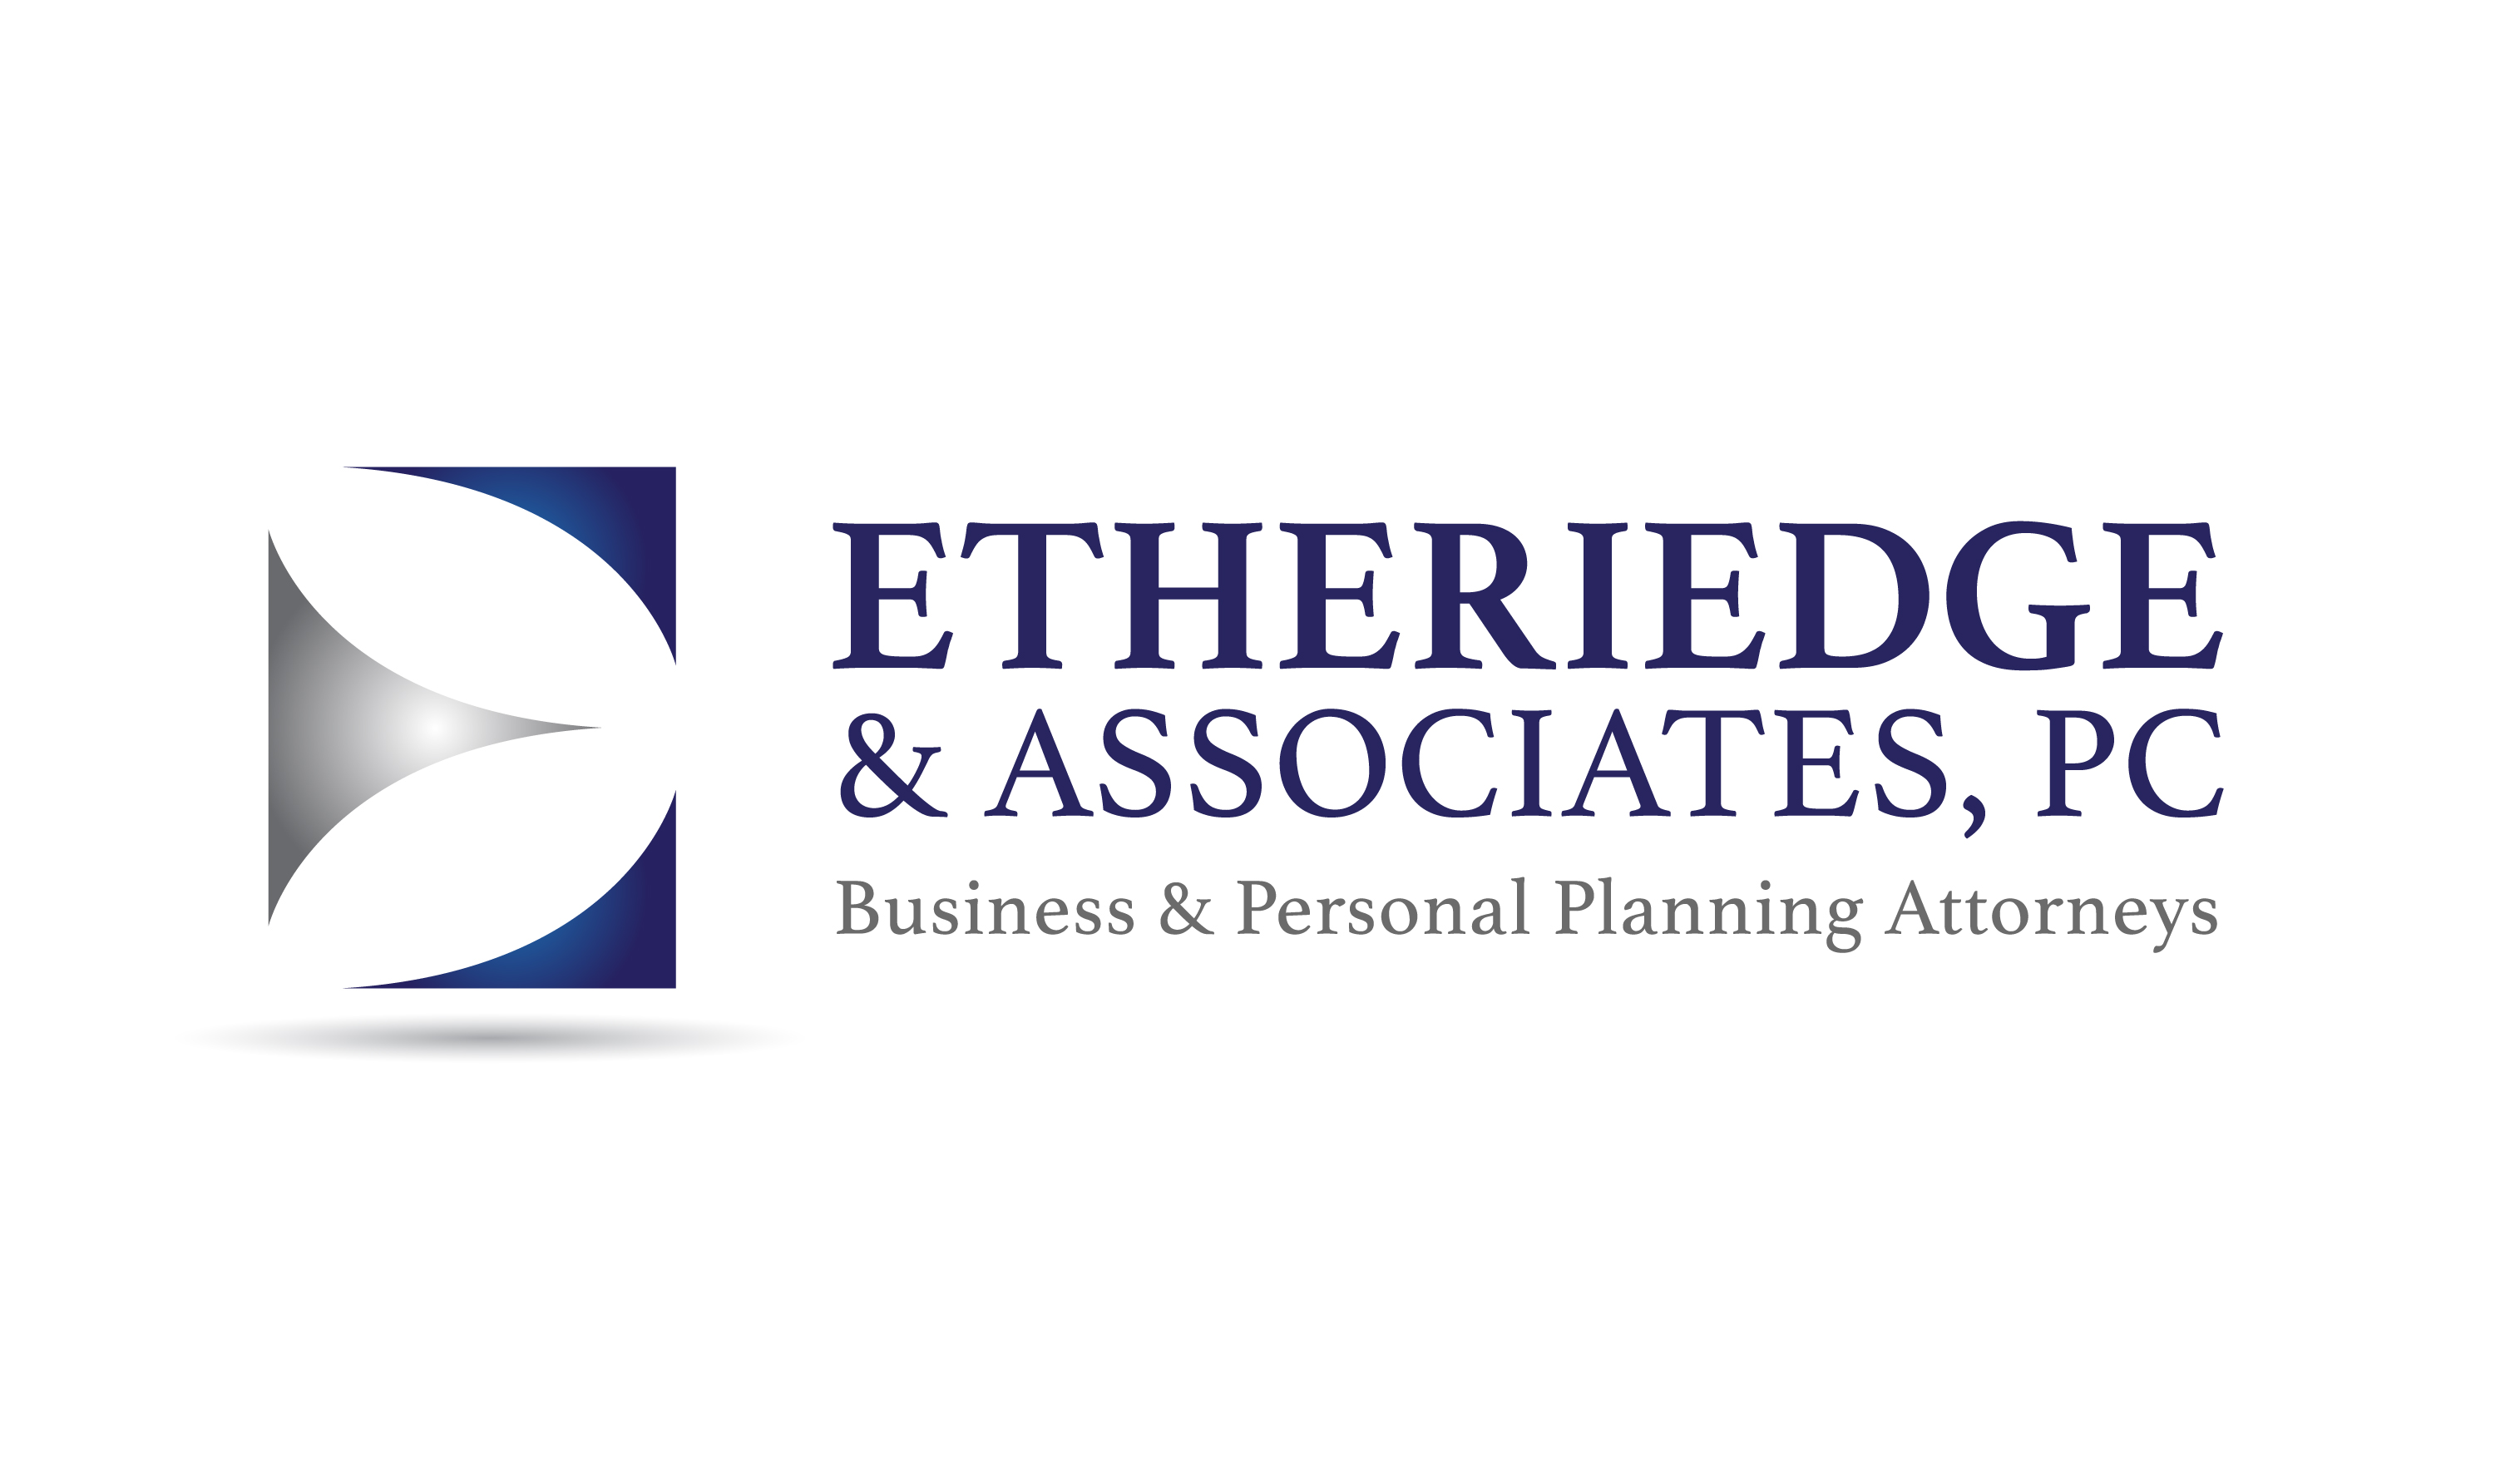 ETHERIEDGE & ASSOCIATES, PC